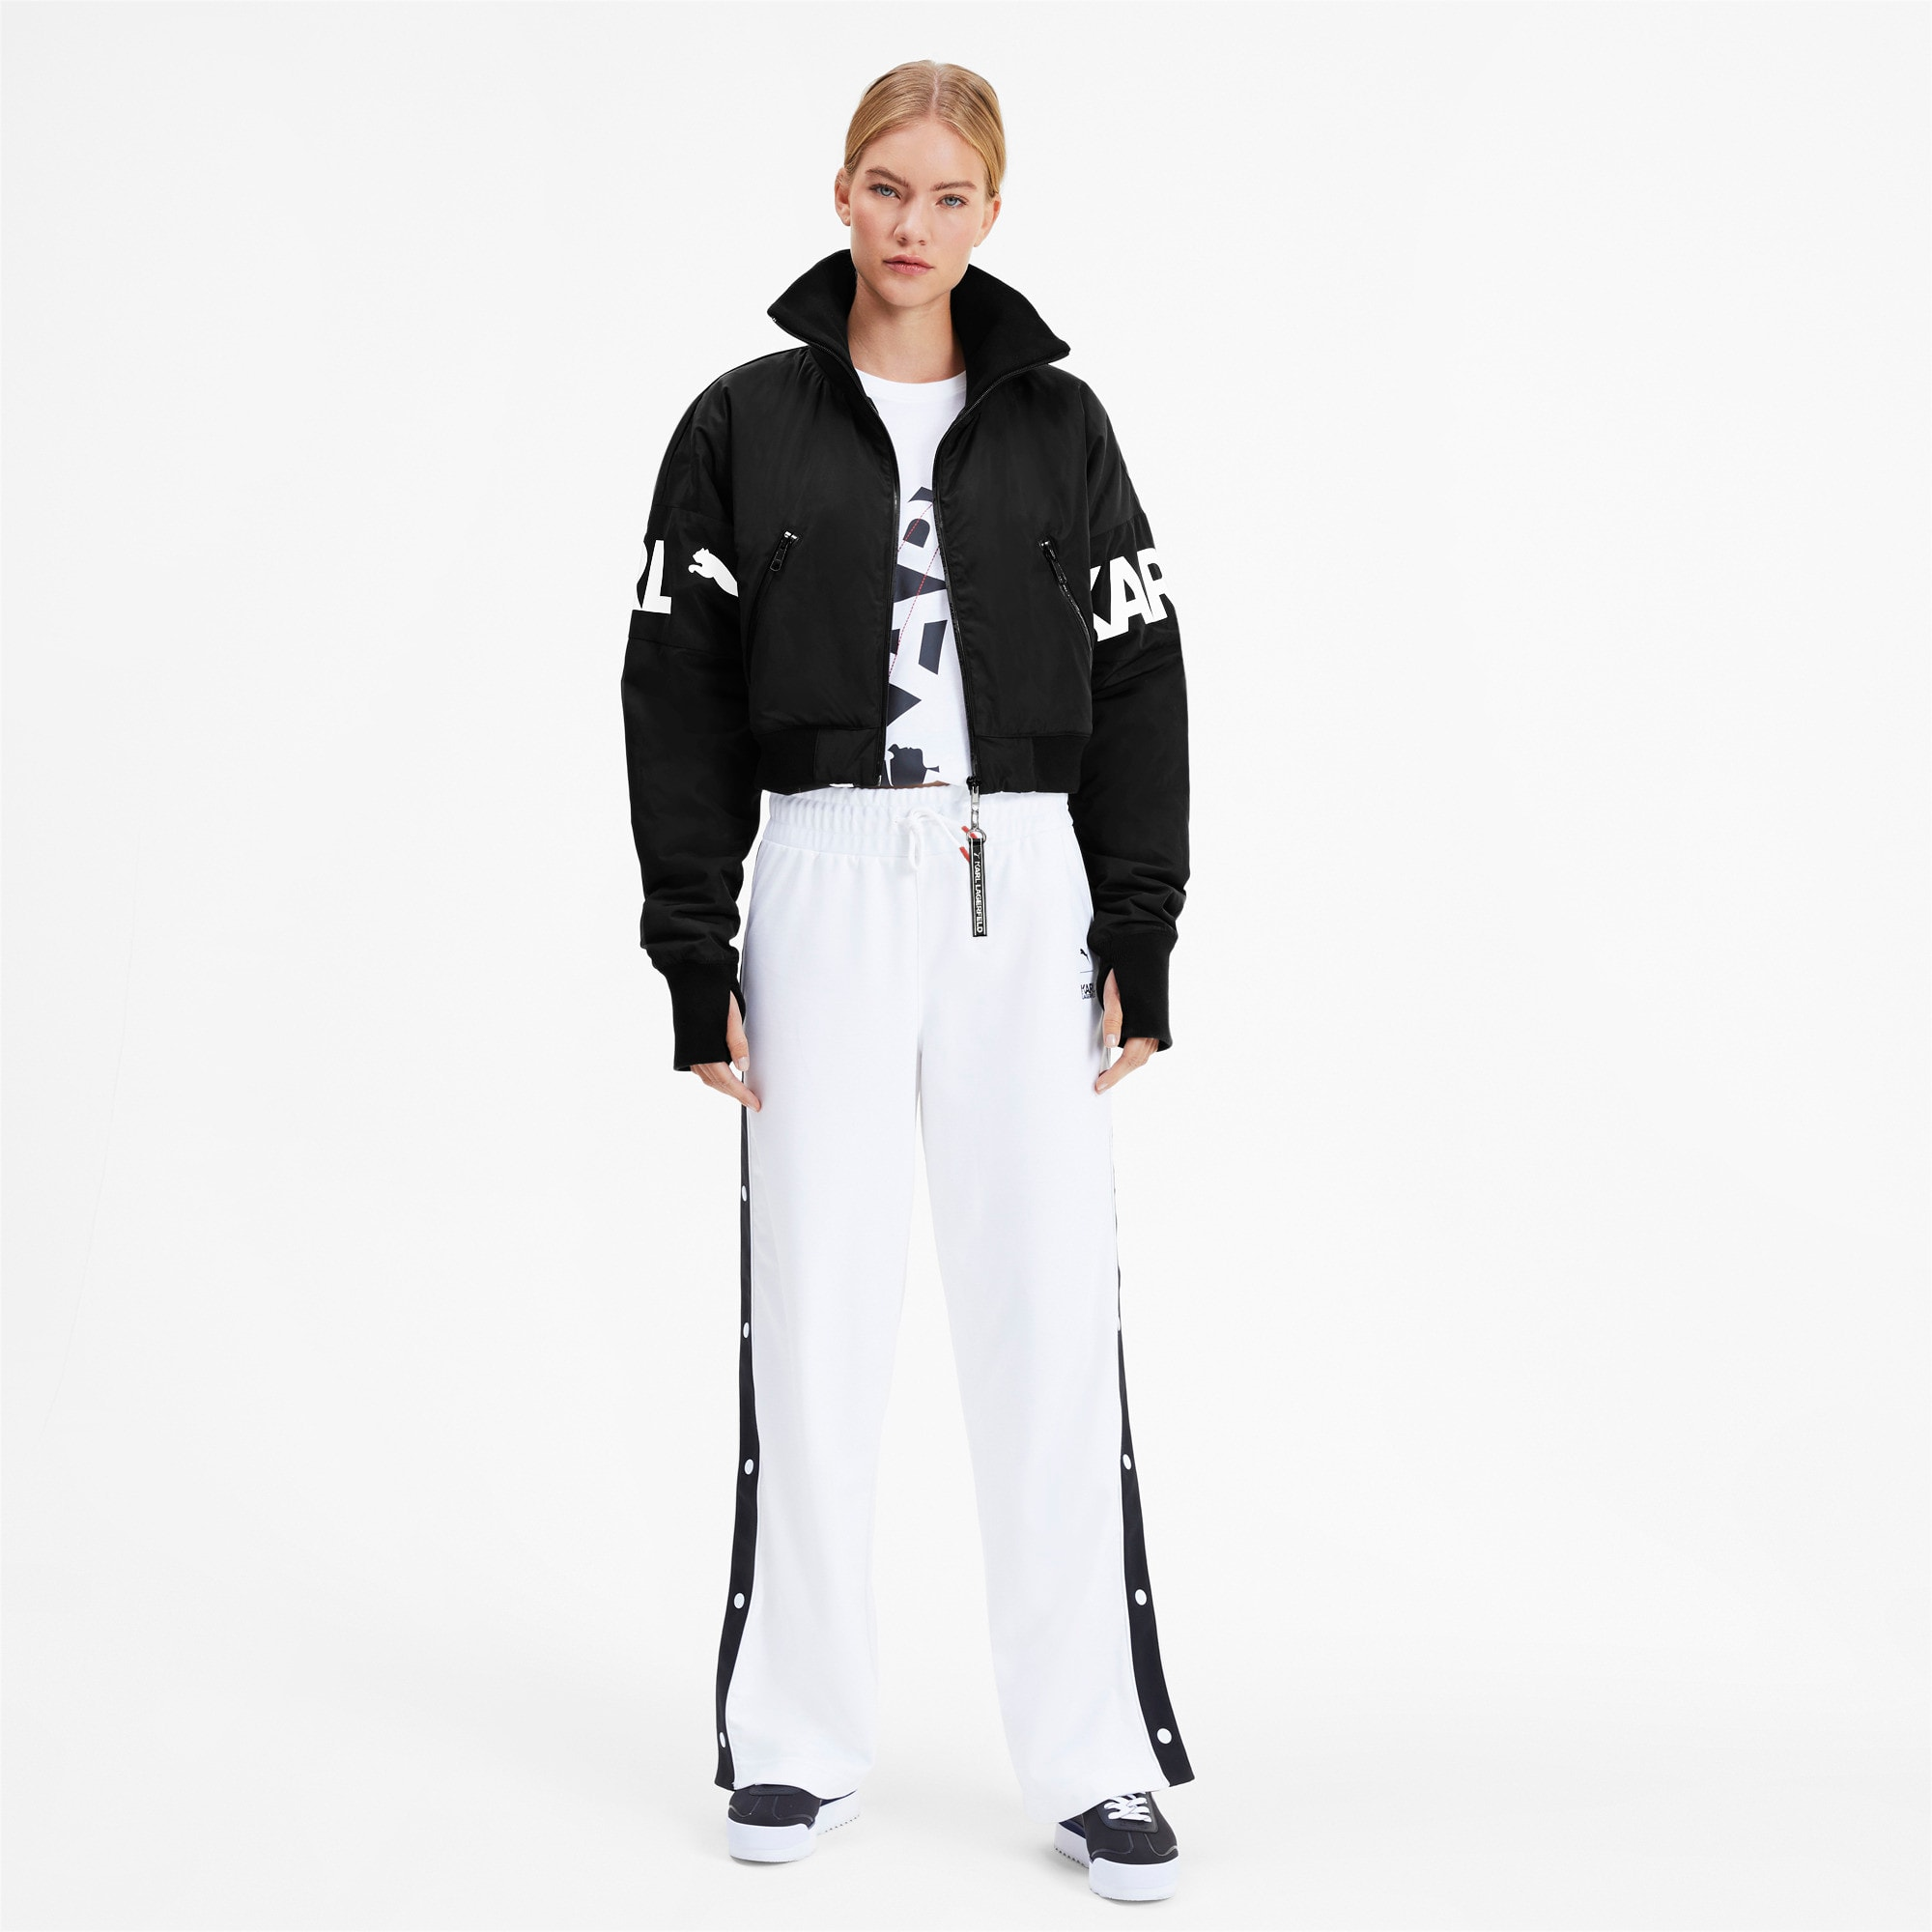 Thumbnail 3 of PUMA x KARL LAGERFELD Women's Bomber Jacket, Puma Black, medium